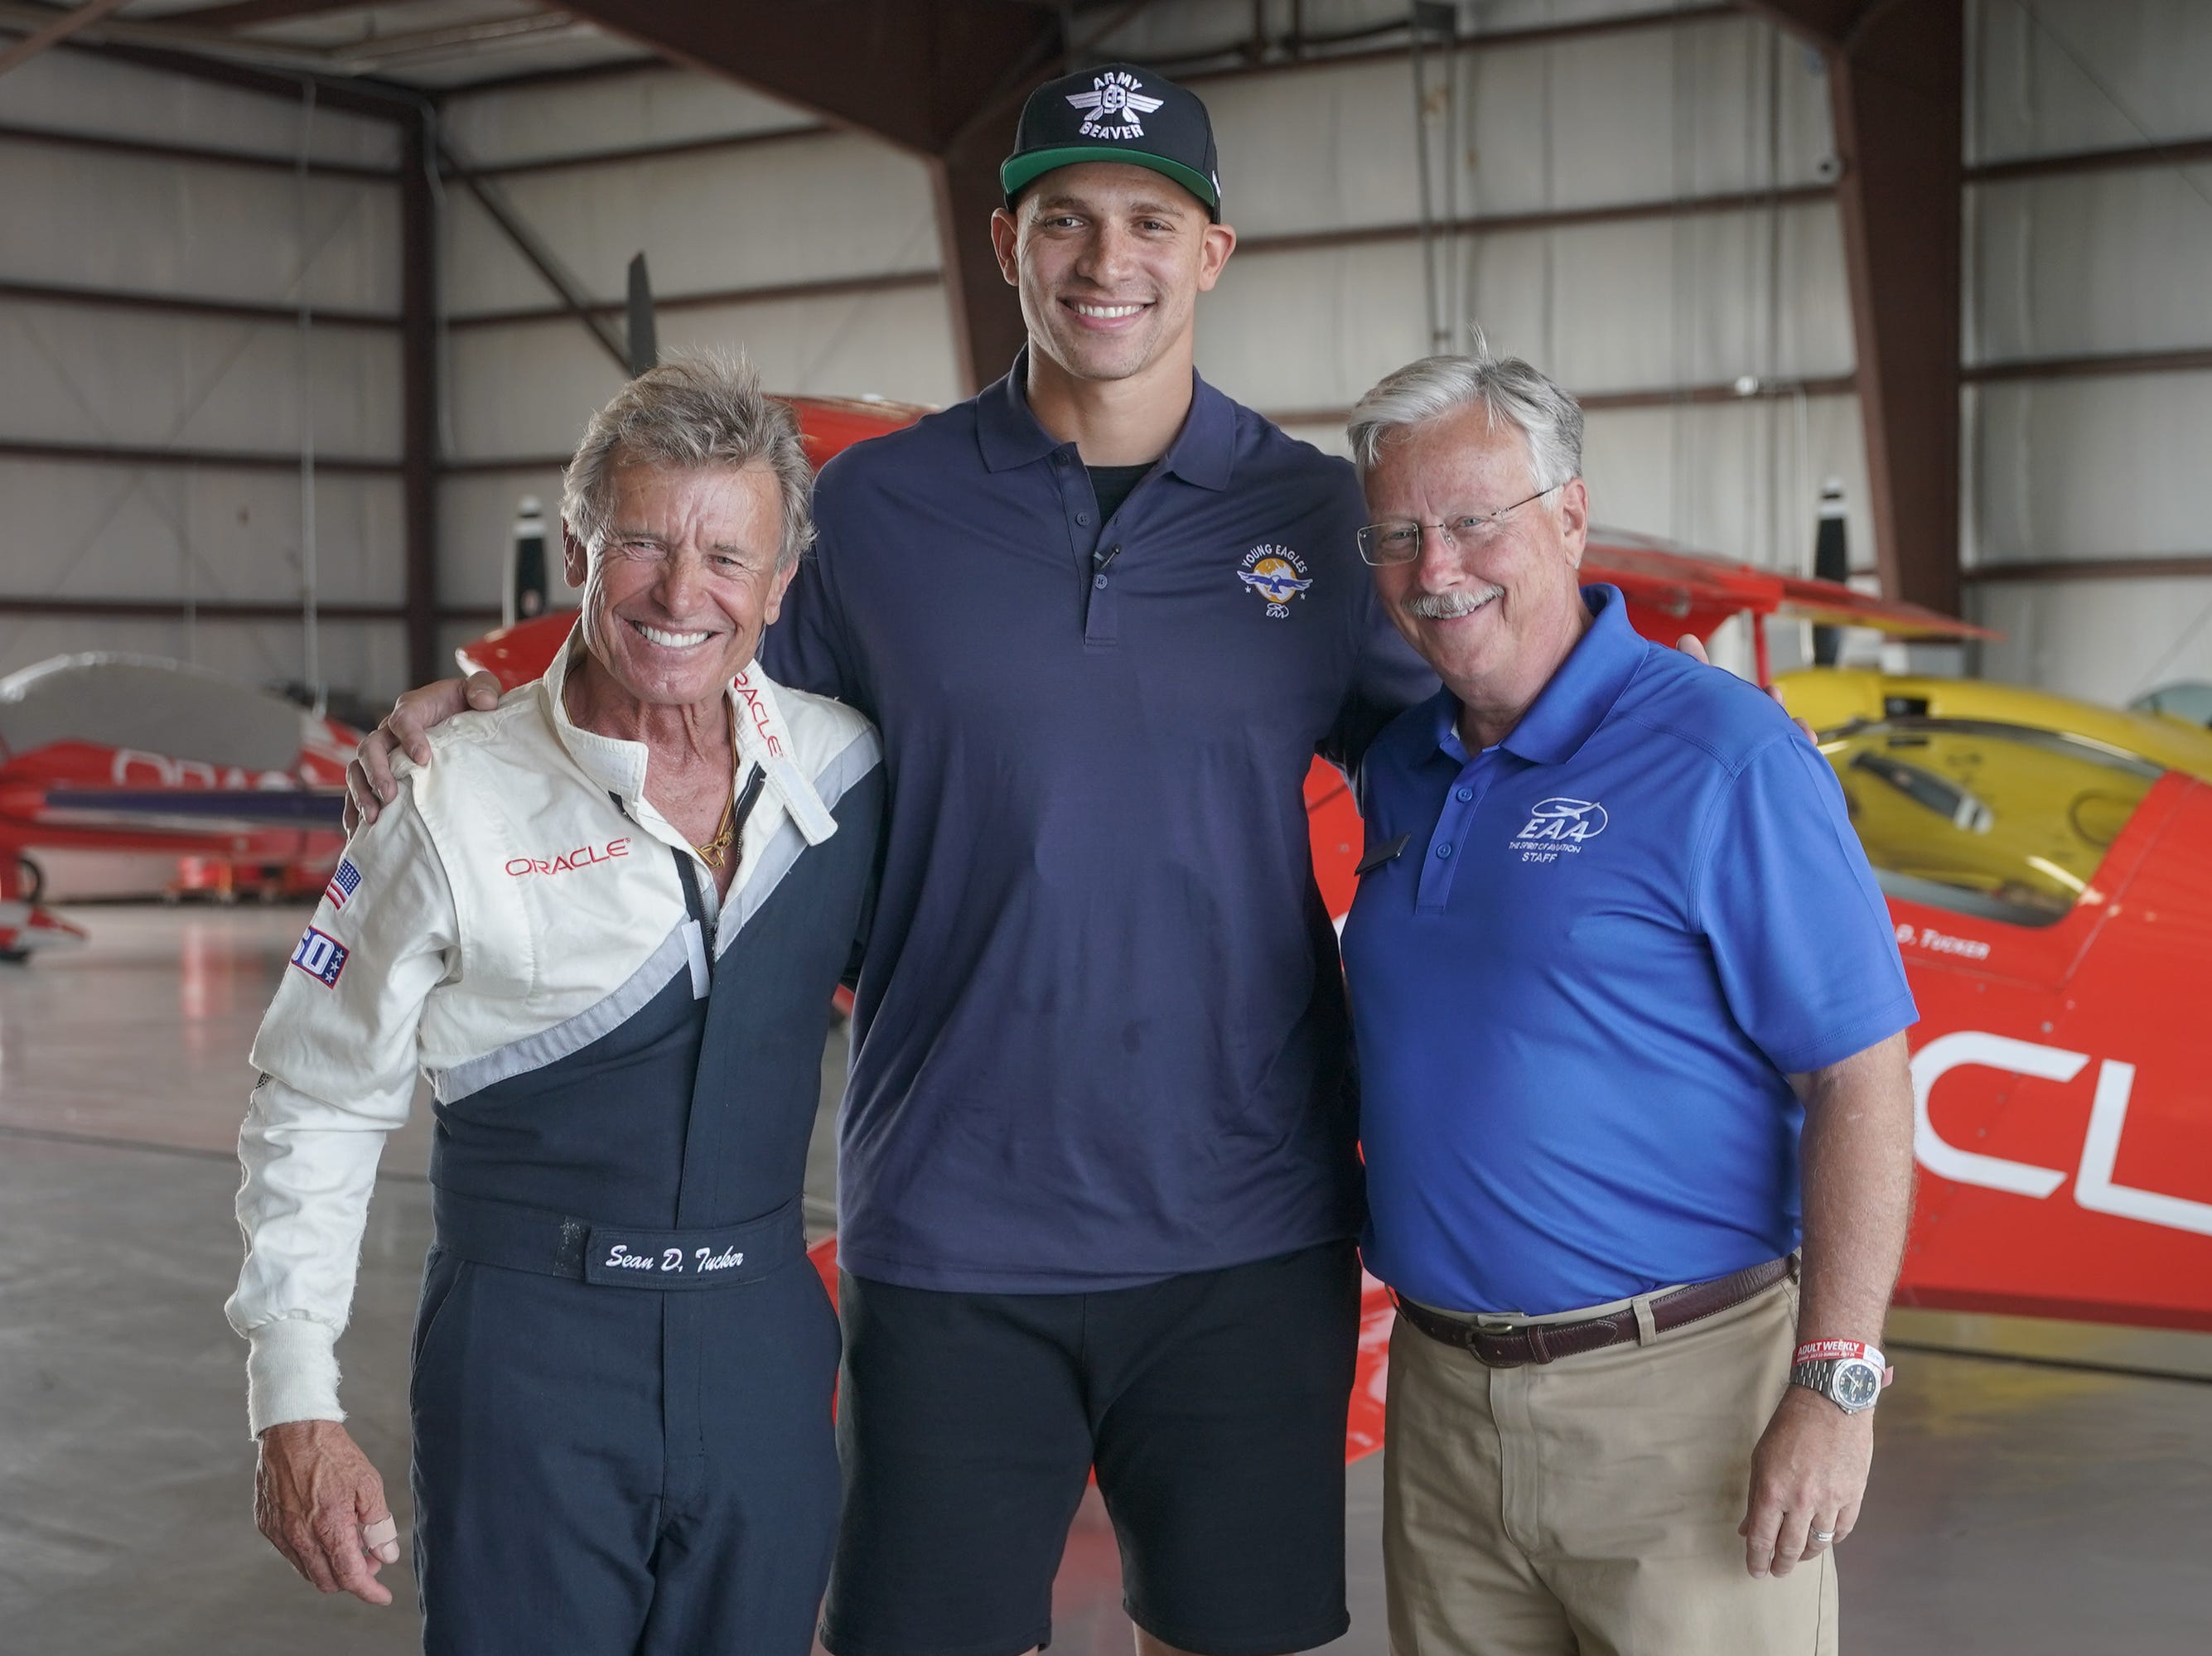 Jimmy Graham poses before the flight with Young Eagles chairman Sean D. Tucker and EAA CEO Jack Pelton. EAA announced  new Young Eagles co-chairman Jimmy Graham with a special flight Monday afternoon. Graham, a Pro Bowl player who is now a tight end with the Green Bay Packers, flew two Young Eagles with Chairman Sean D. Tucker.